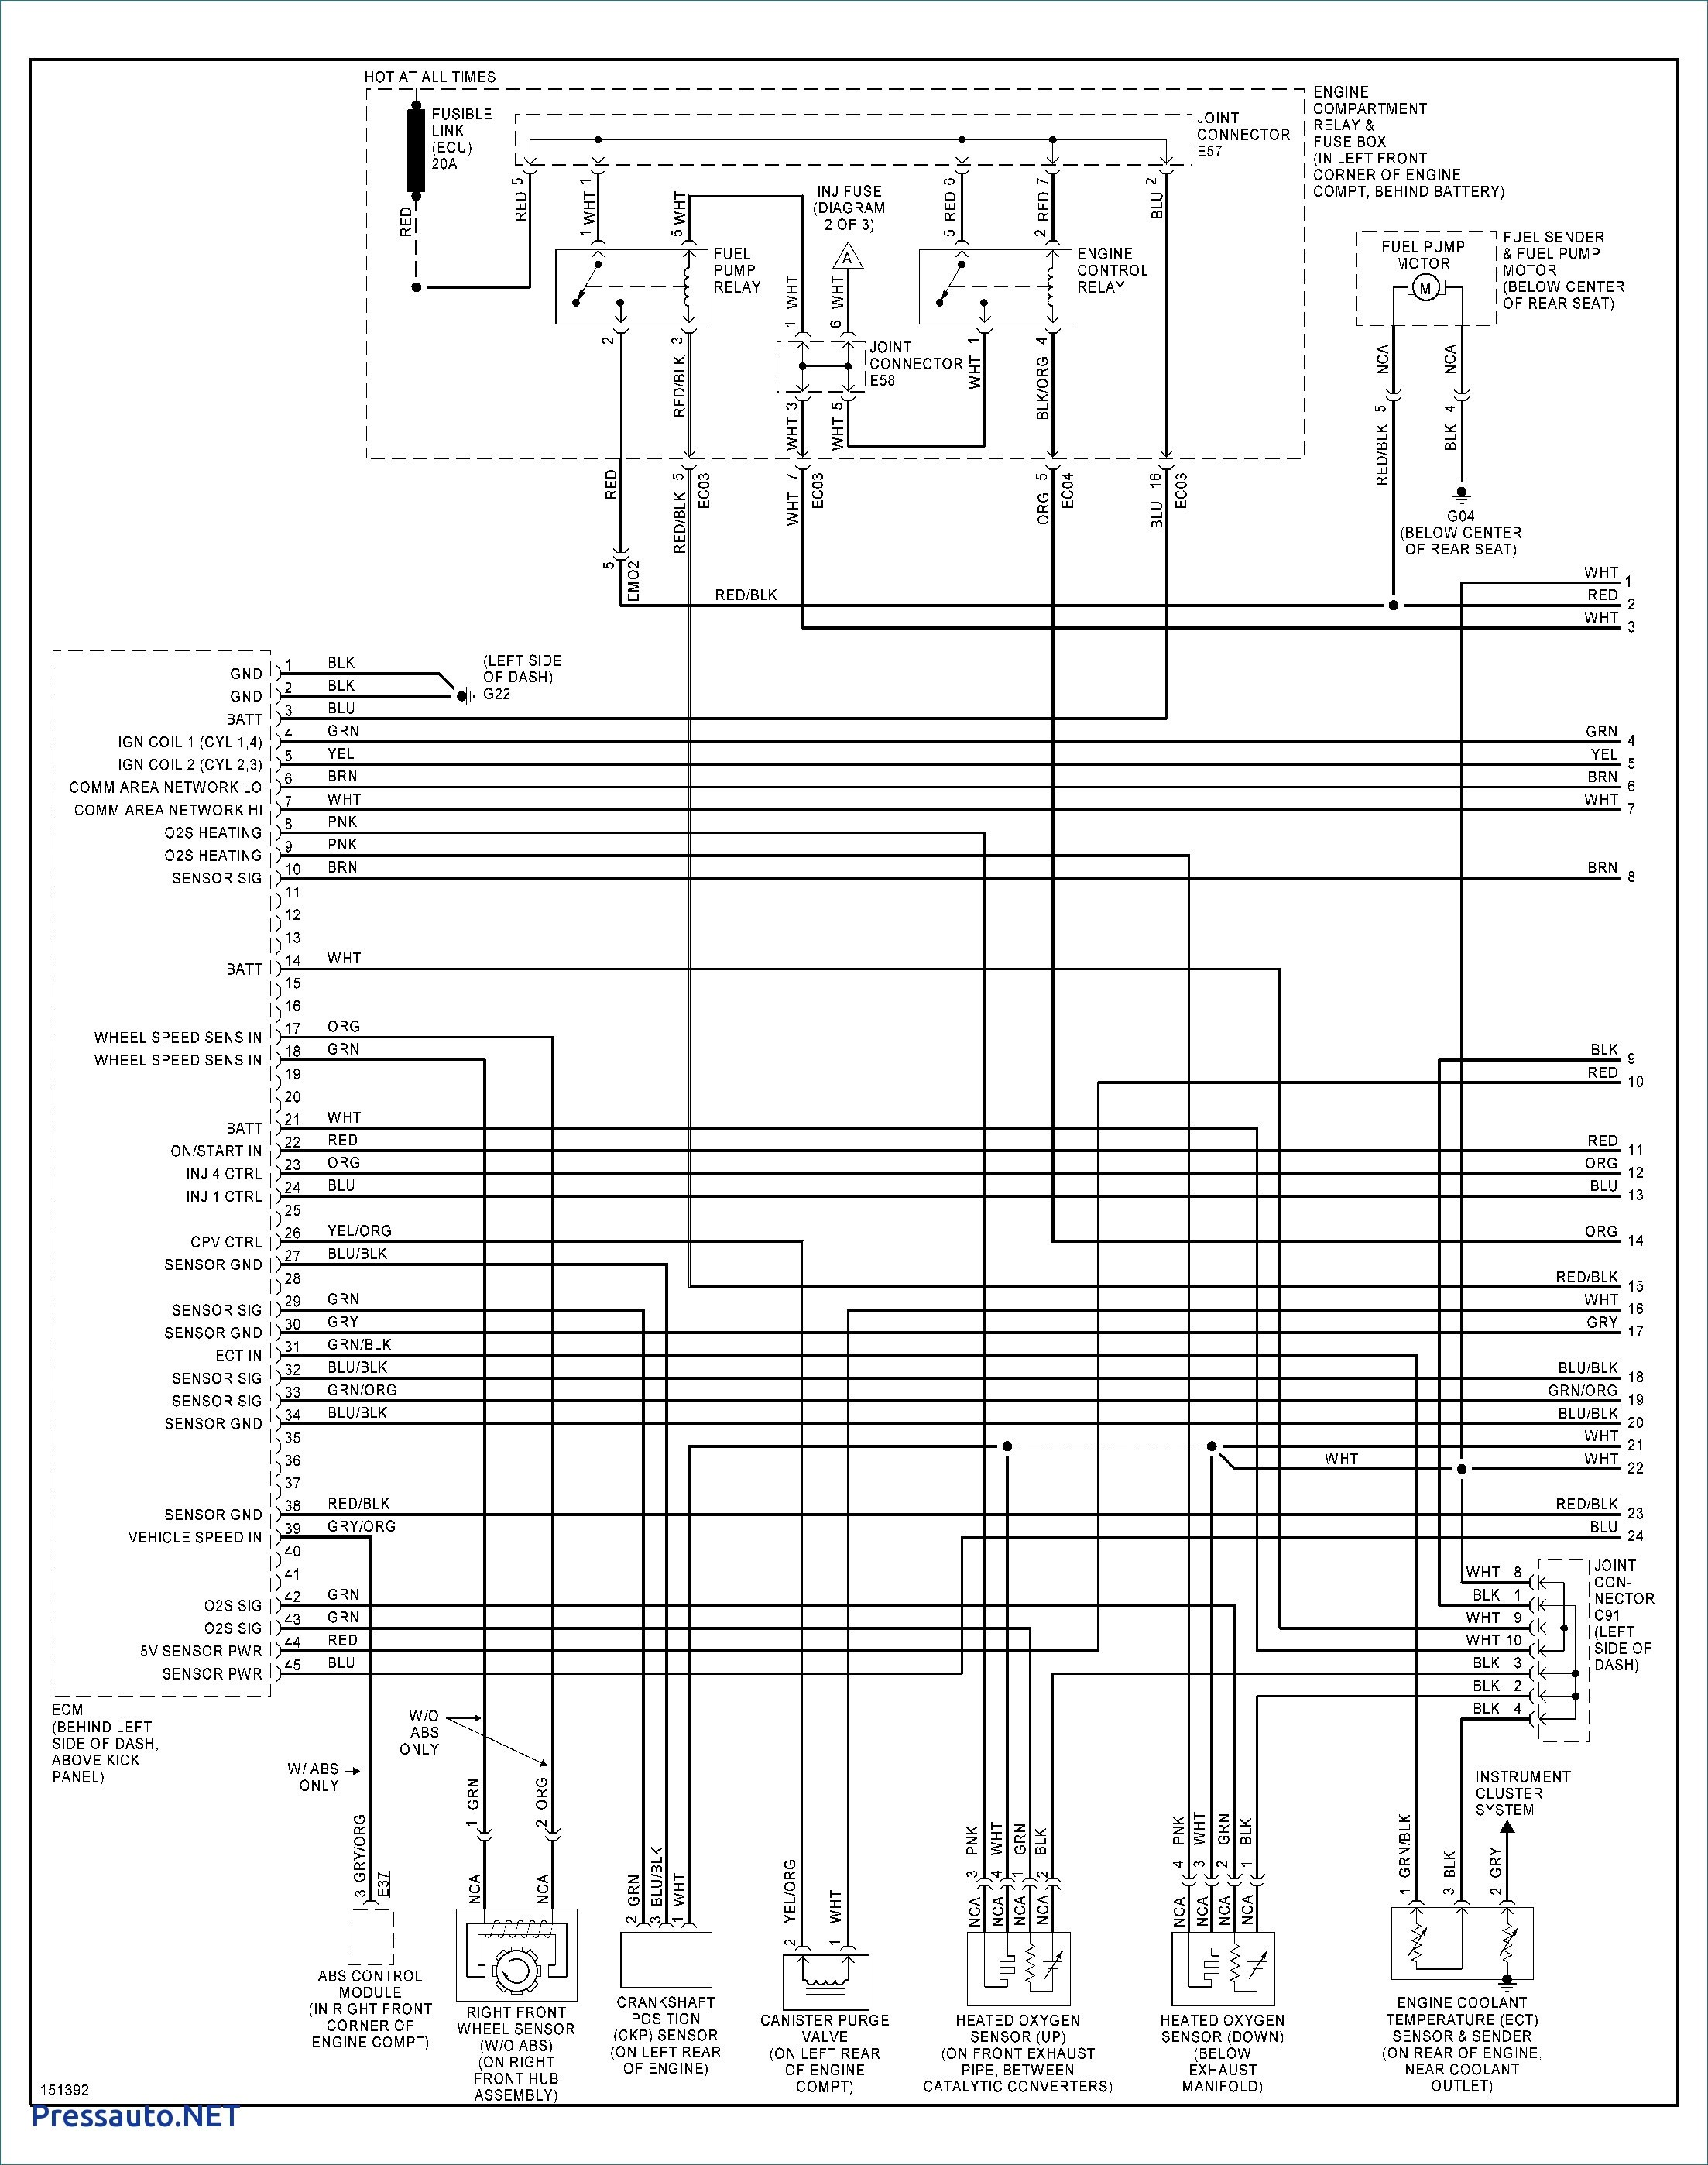 2007 Hyundai Santa Fe Engine Diagram Wiring Diagram for 2005 Hyundai Santa Fe 3 5 Schematics Wiring Of 2007 Hyundai Santa Fe Engine Diagram Wiring Diagram 2003 Hyundai Tiburon 2 0l Schematics Wiring Diagrams •